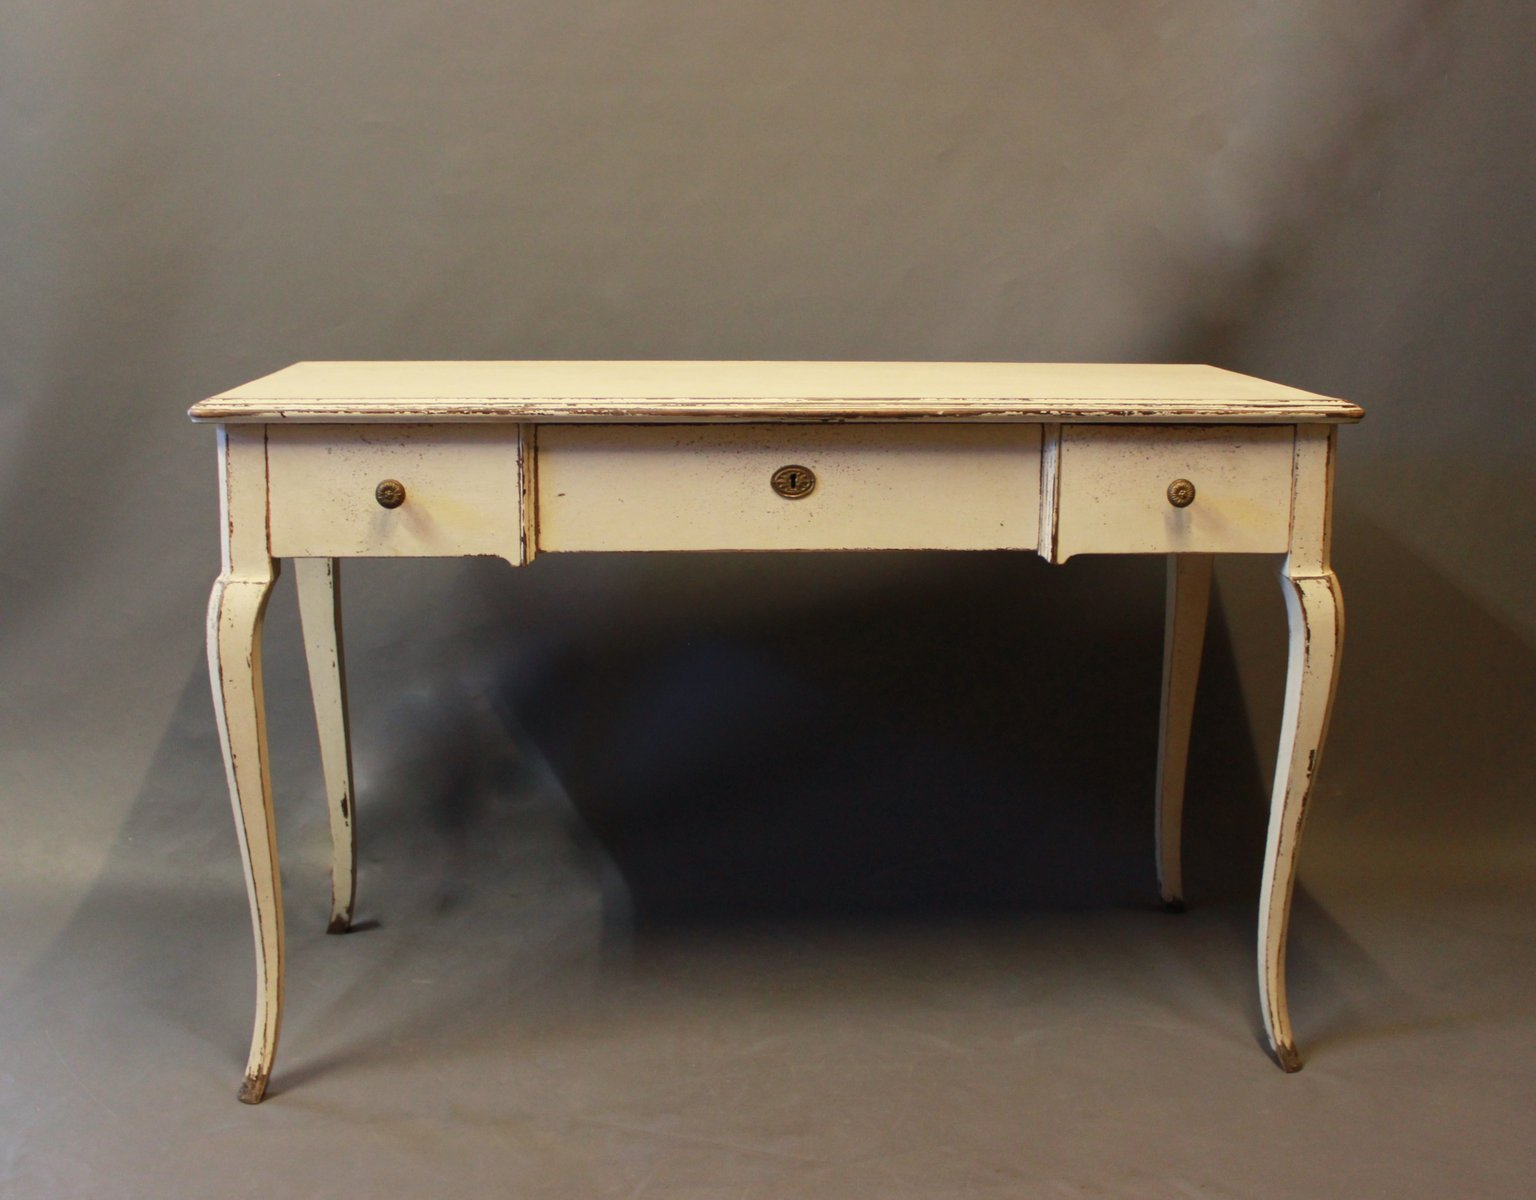 Charmant Grey Painted Desk, 1930s